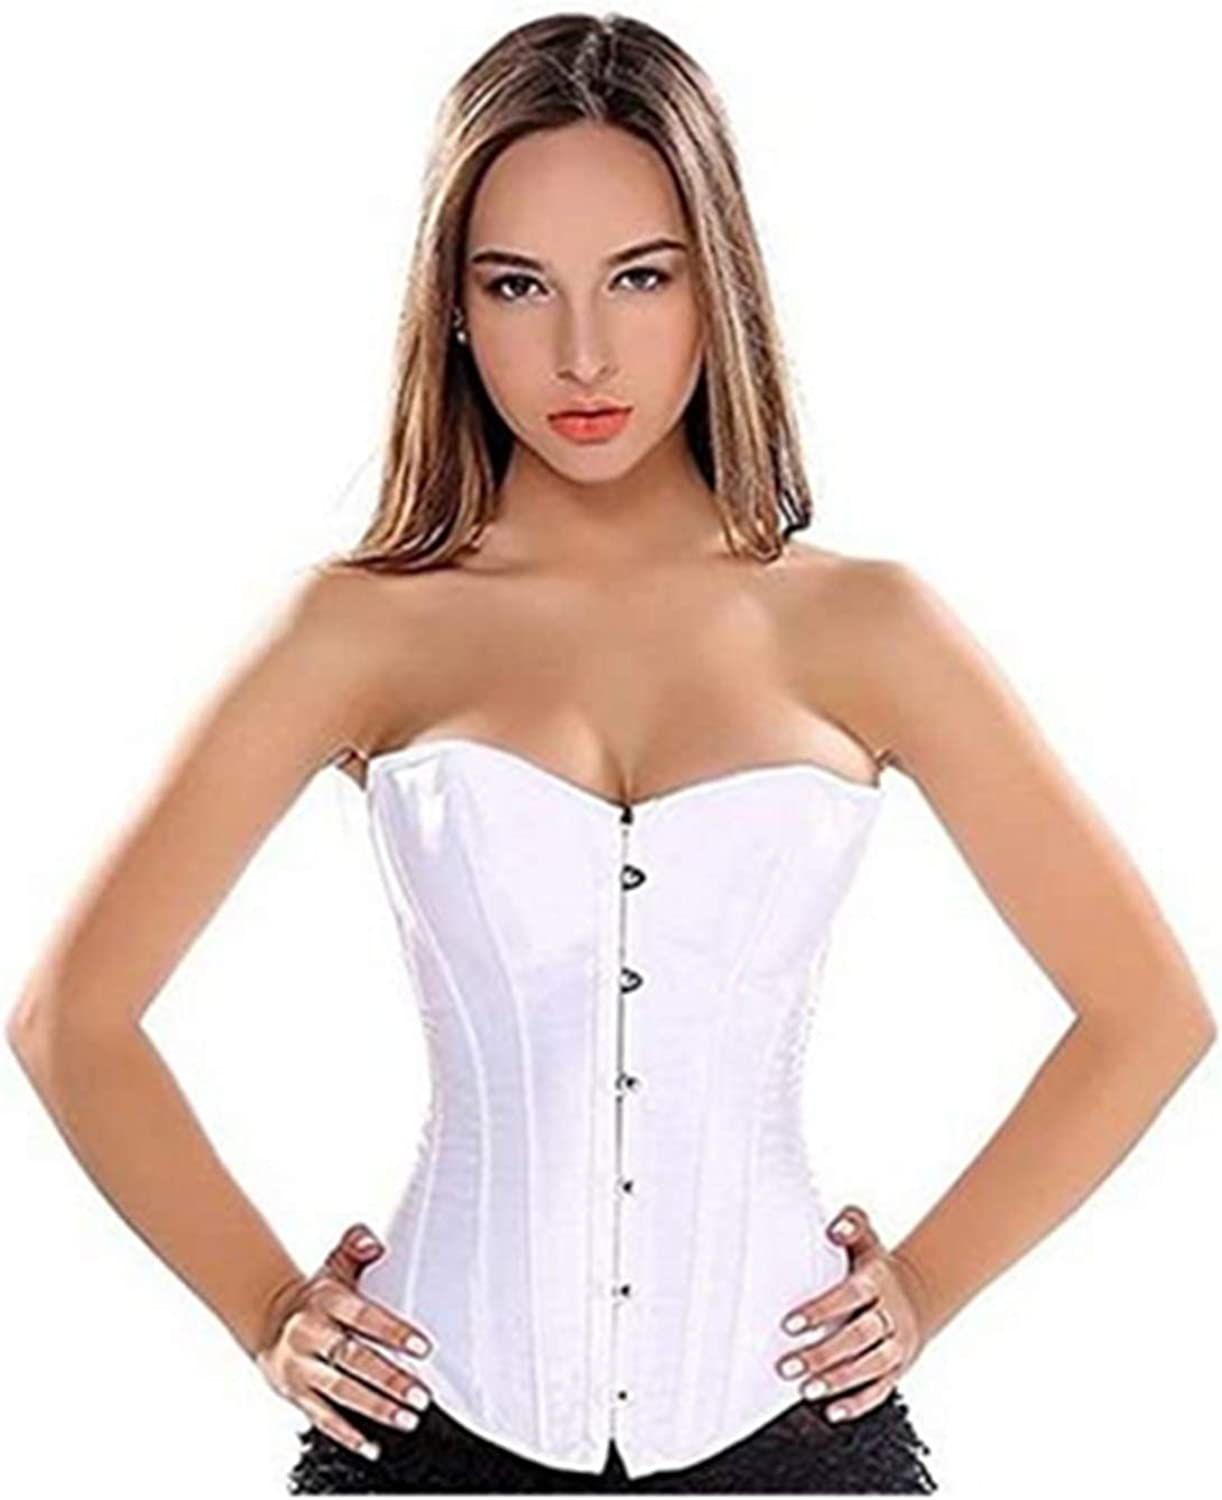 Corset Tops for Women,Womens Plus Size Satin Overbust Corset Bustier,Lace Up Boned Satin Bridal Brocade Top Shapewear Outfit